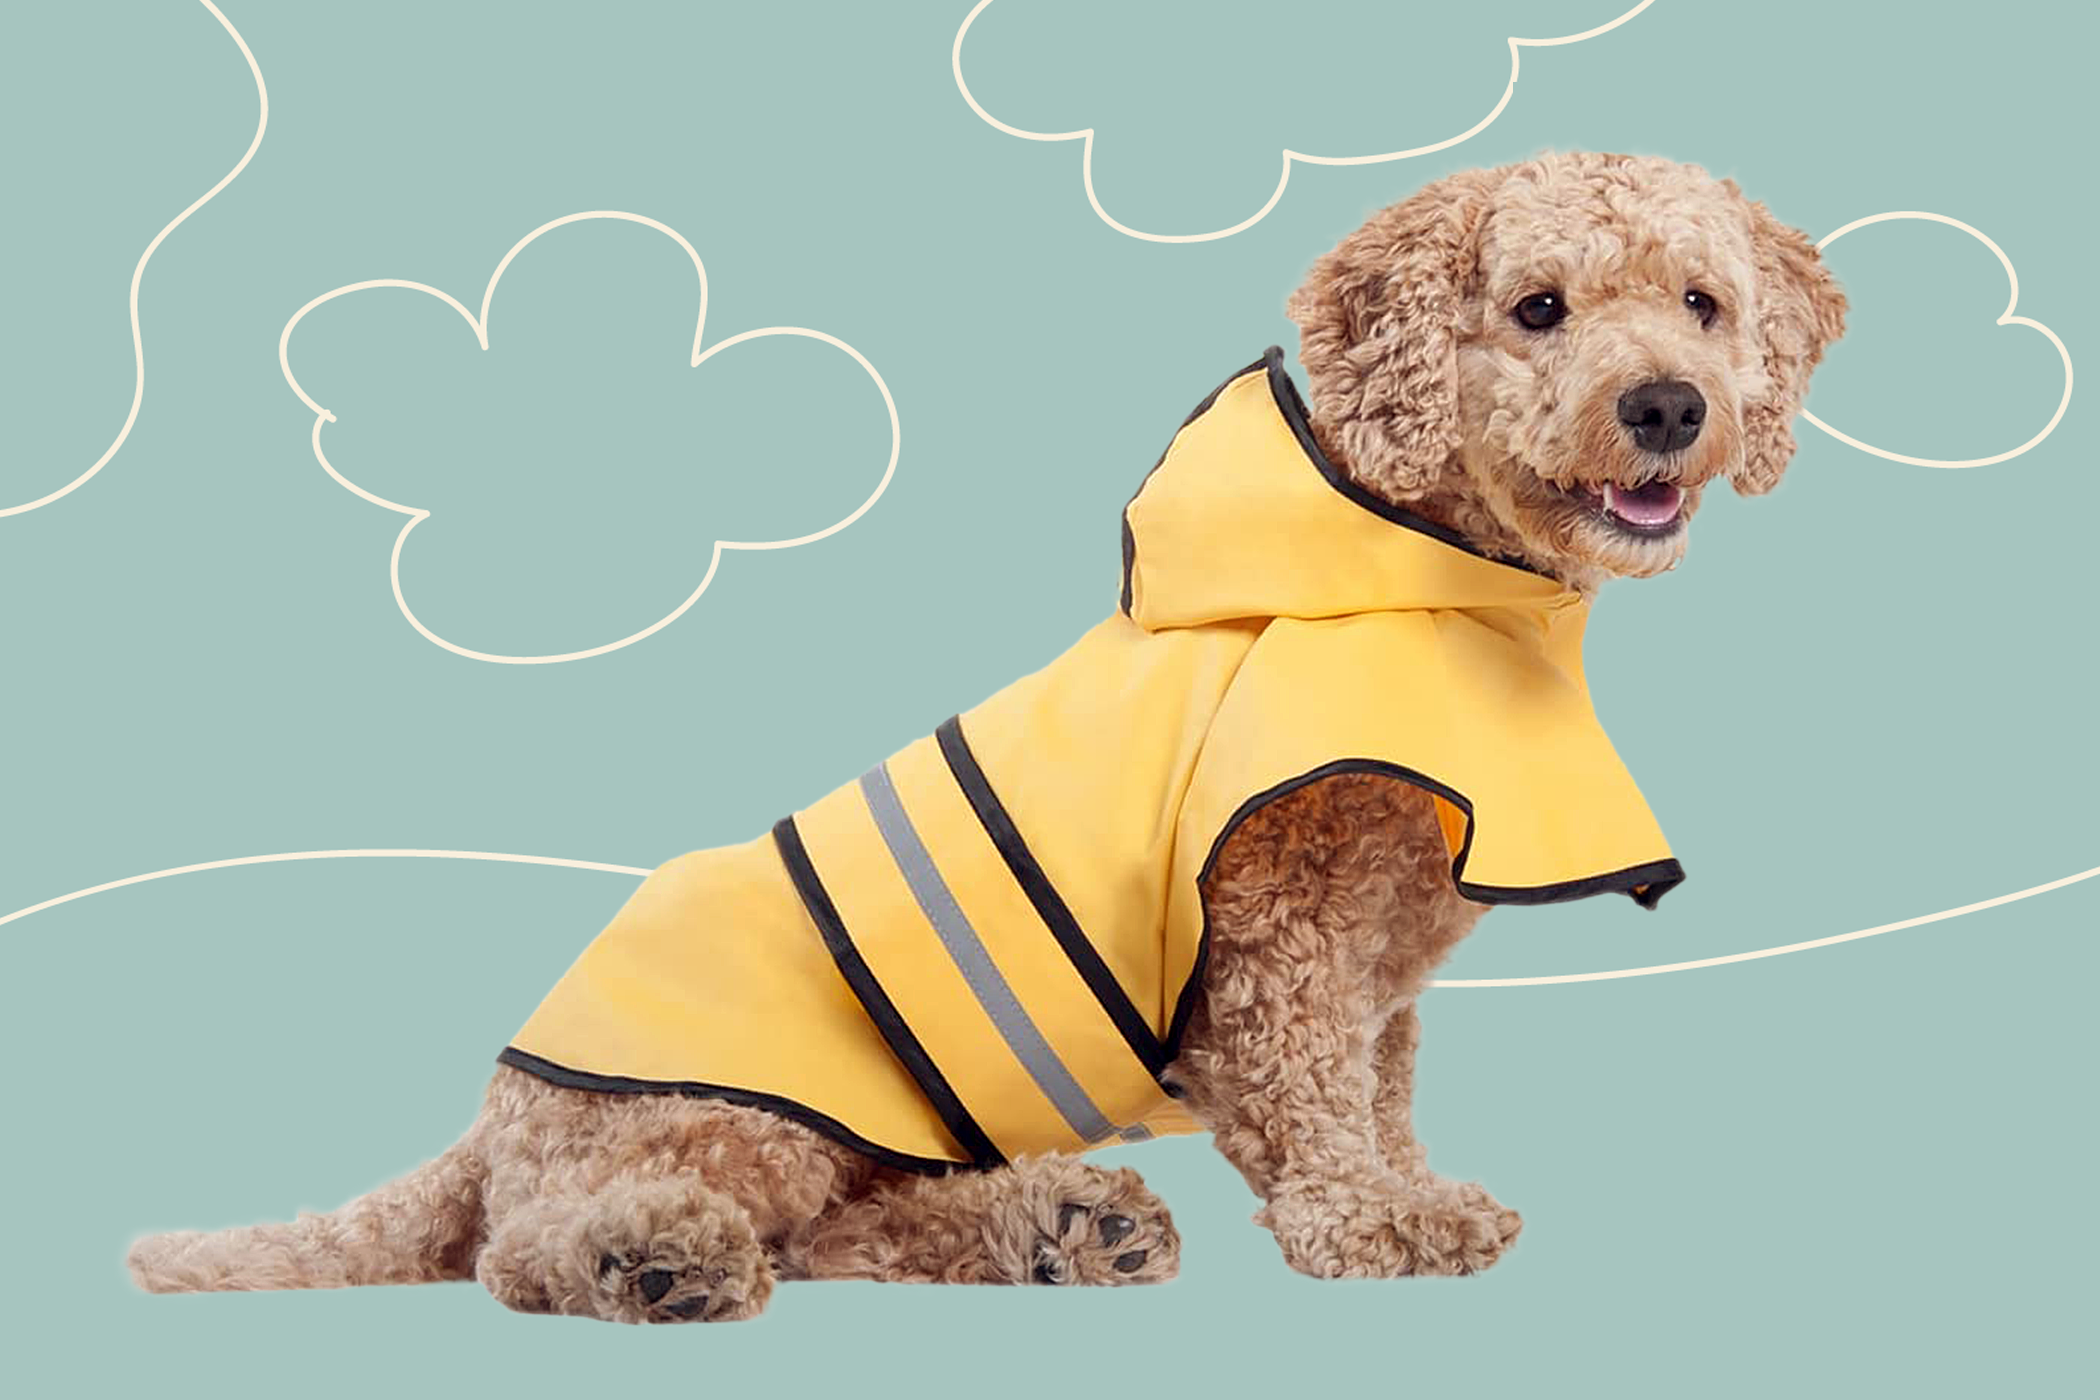 Golden curly haired dog with yellow rain coat